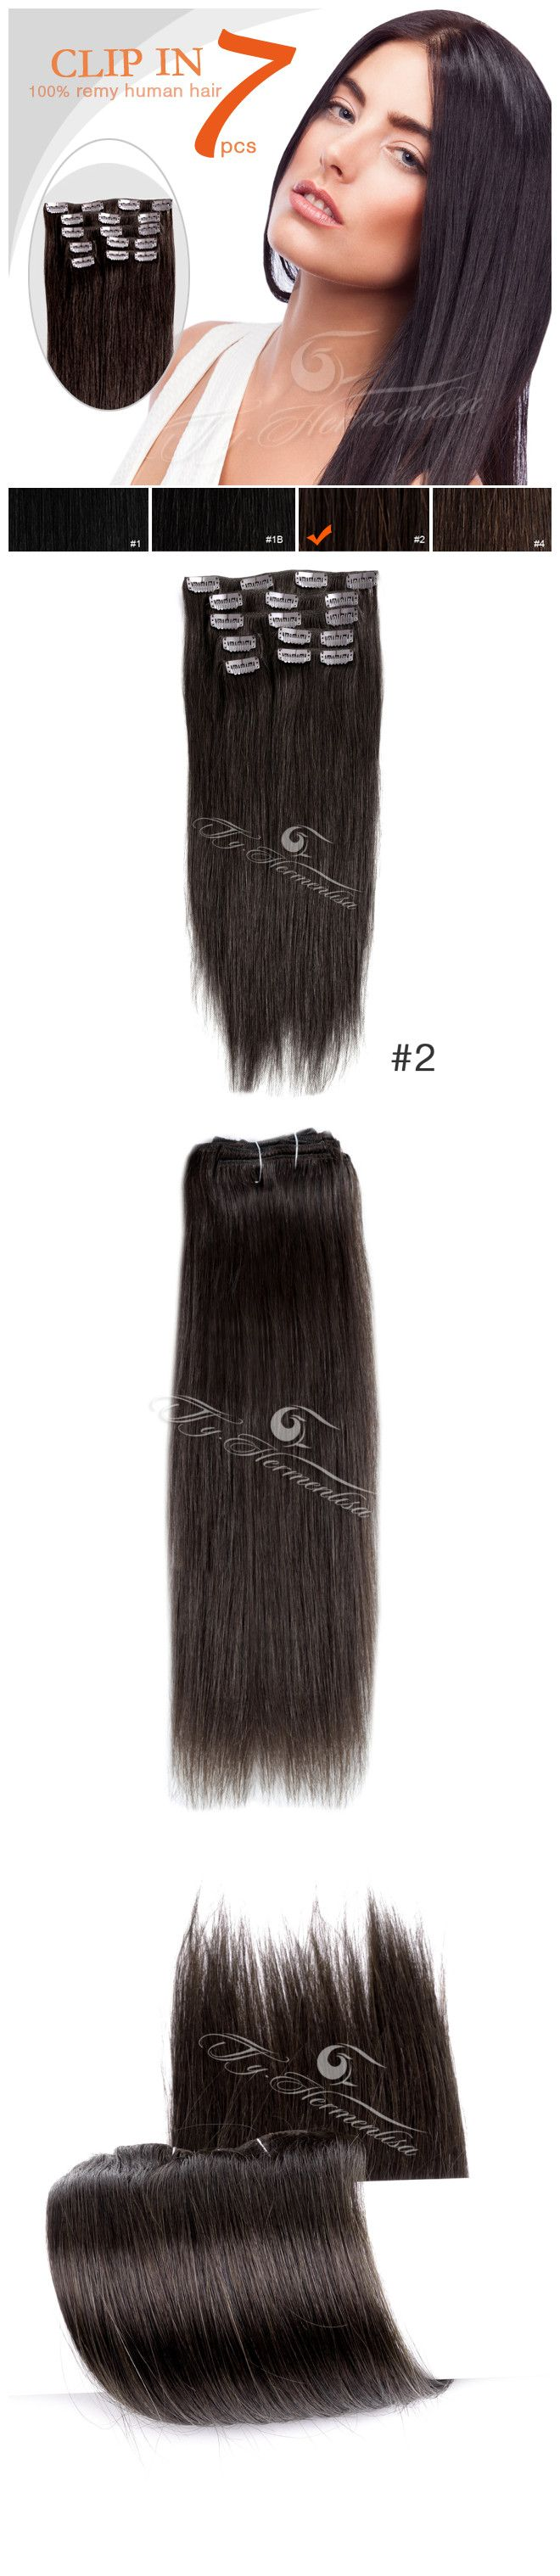 45 Best 7 Clip In Hair Extensions Tyhermenlisa Hair Images On